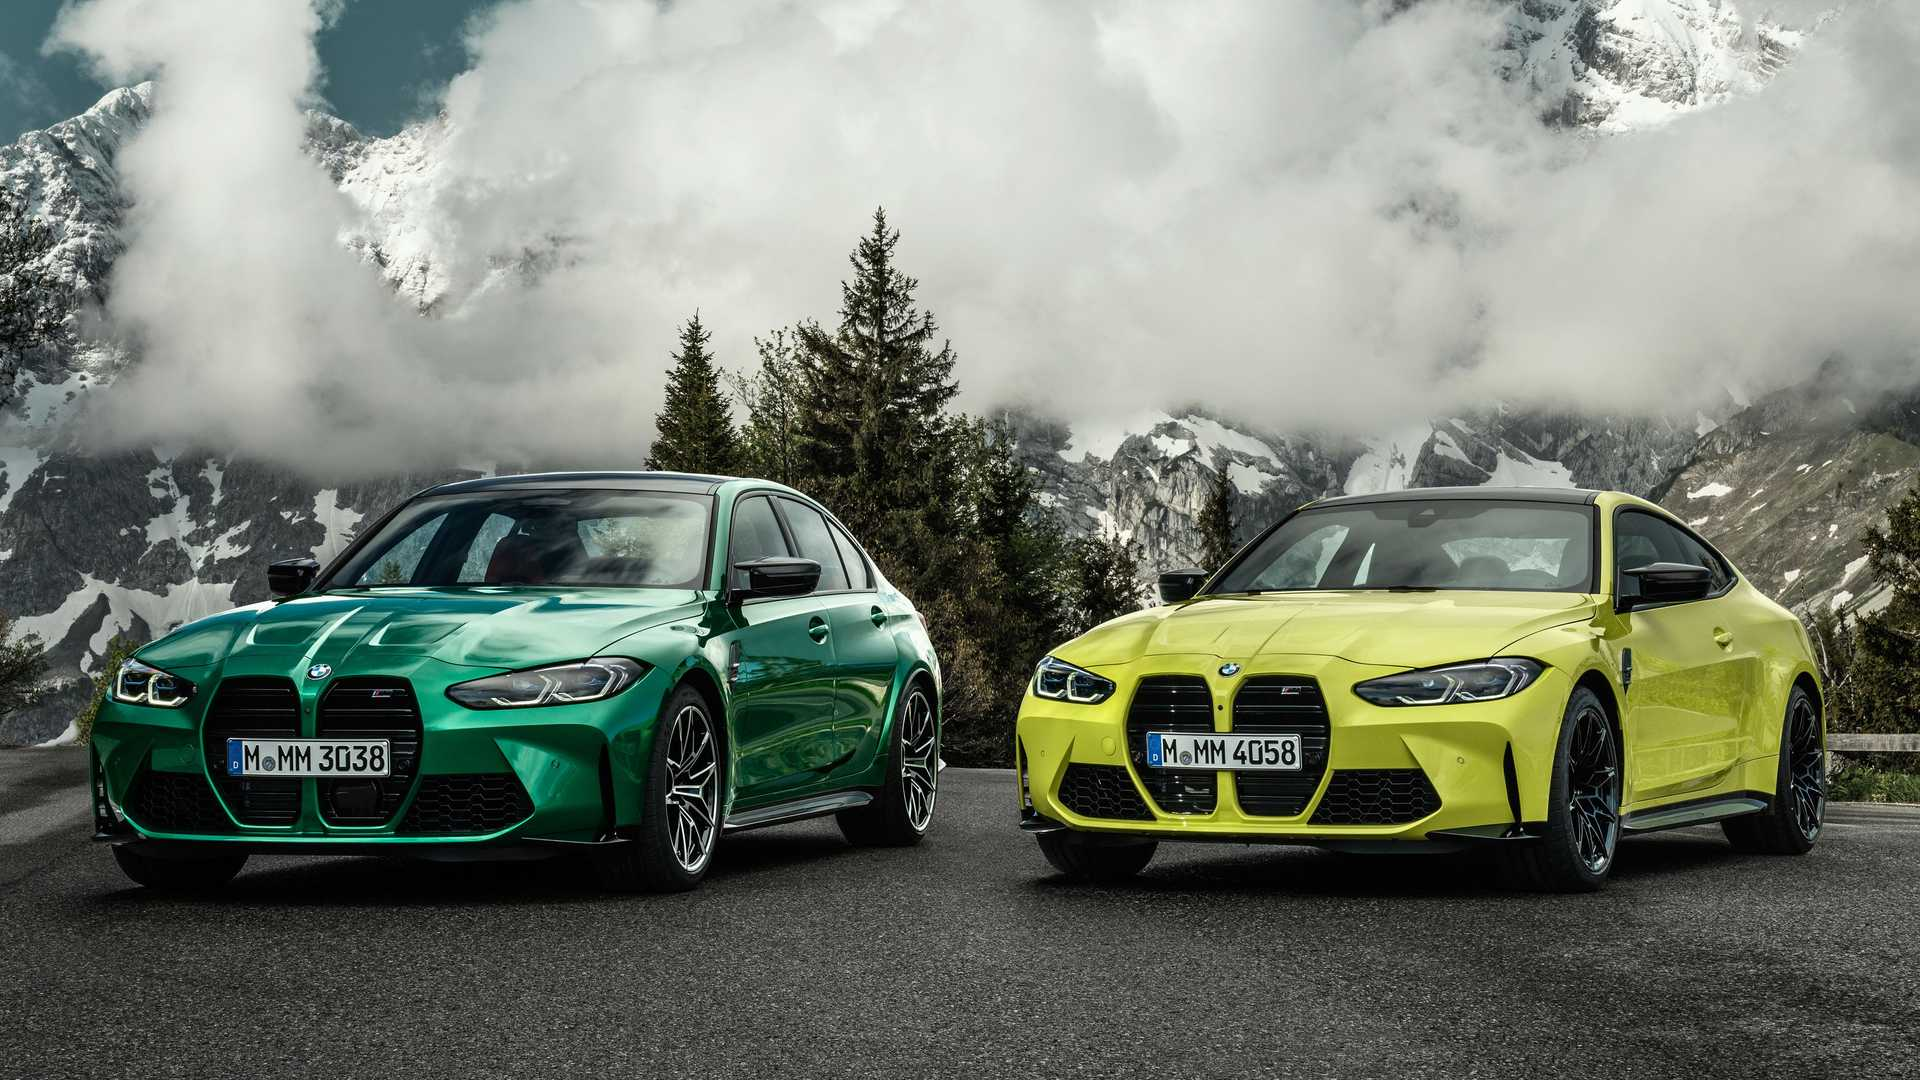 The long wait is over: BMW has removed the wraps from its new M3 and M4 models. Both debuted in their topmost Competition spec armed with the 3.0-liter turbo-six engine of the X3 M and X4 M, but with higher torque.